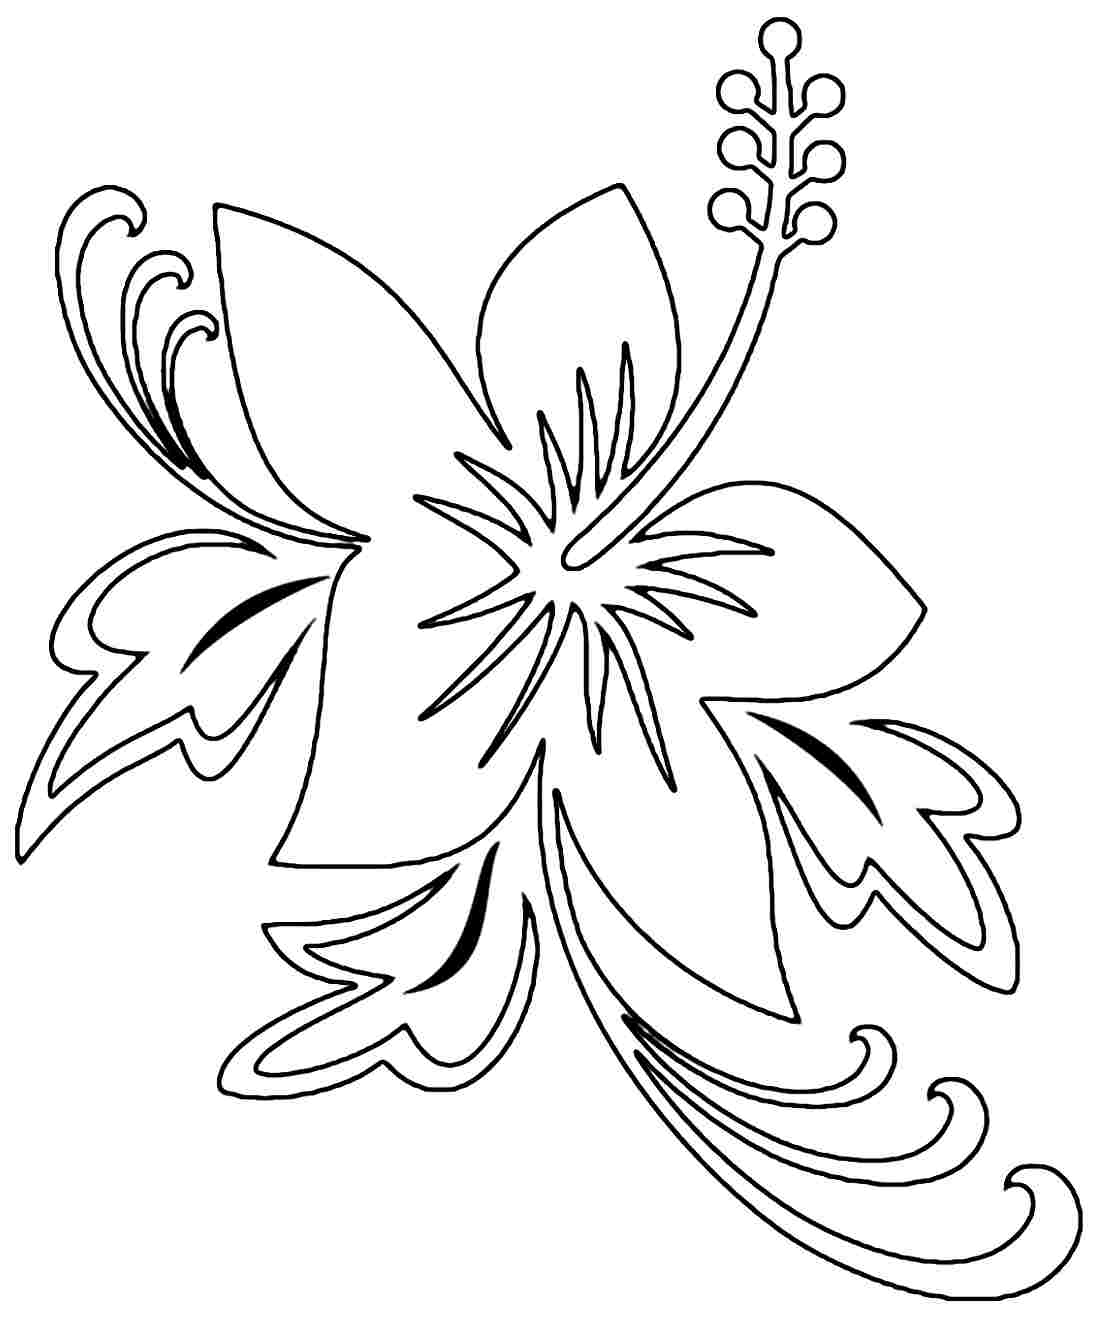 Uncategorized Hibiscus Coloring Pages free printable hibiscus coloring pages for kids page